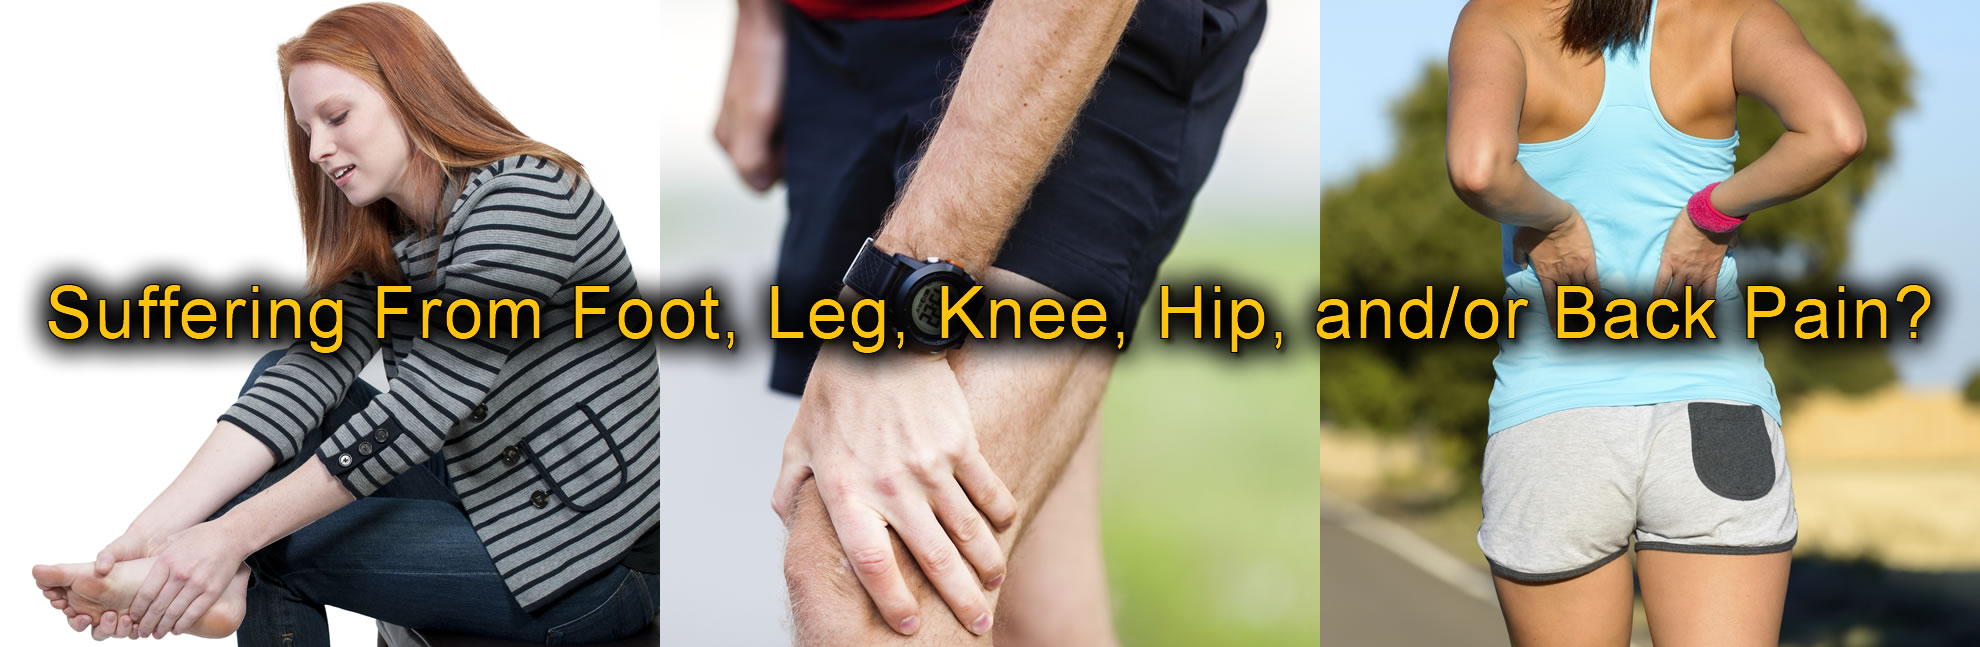 Suffering from foot, leg, knee, hip, and/or back pain?